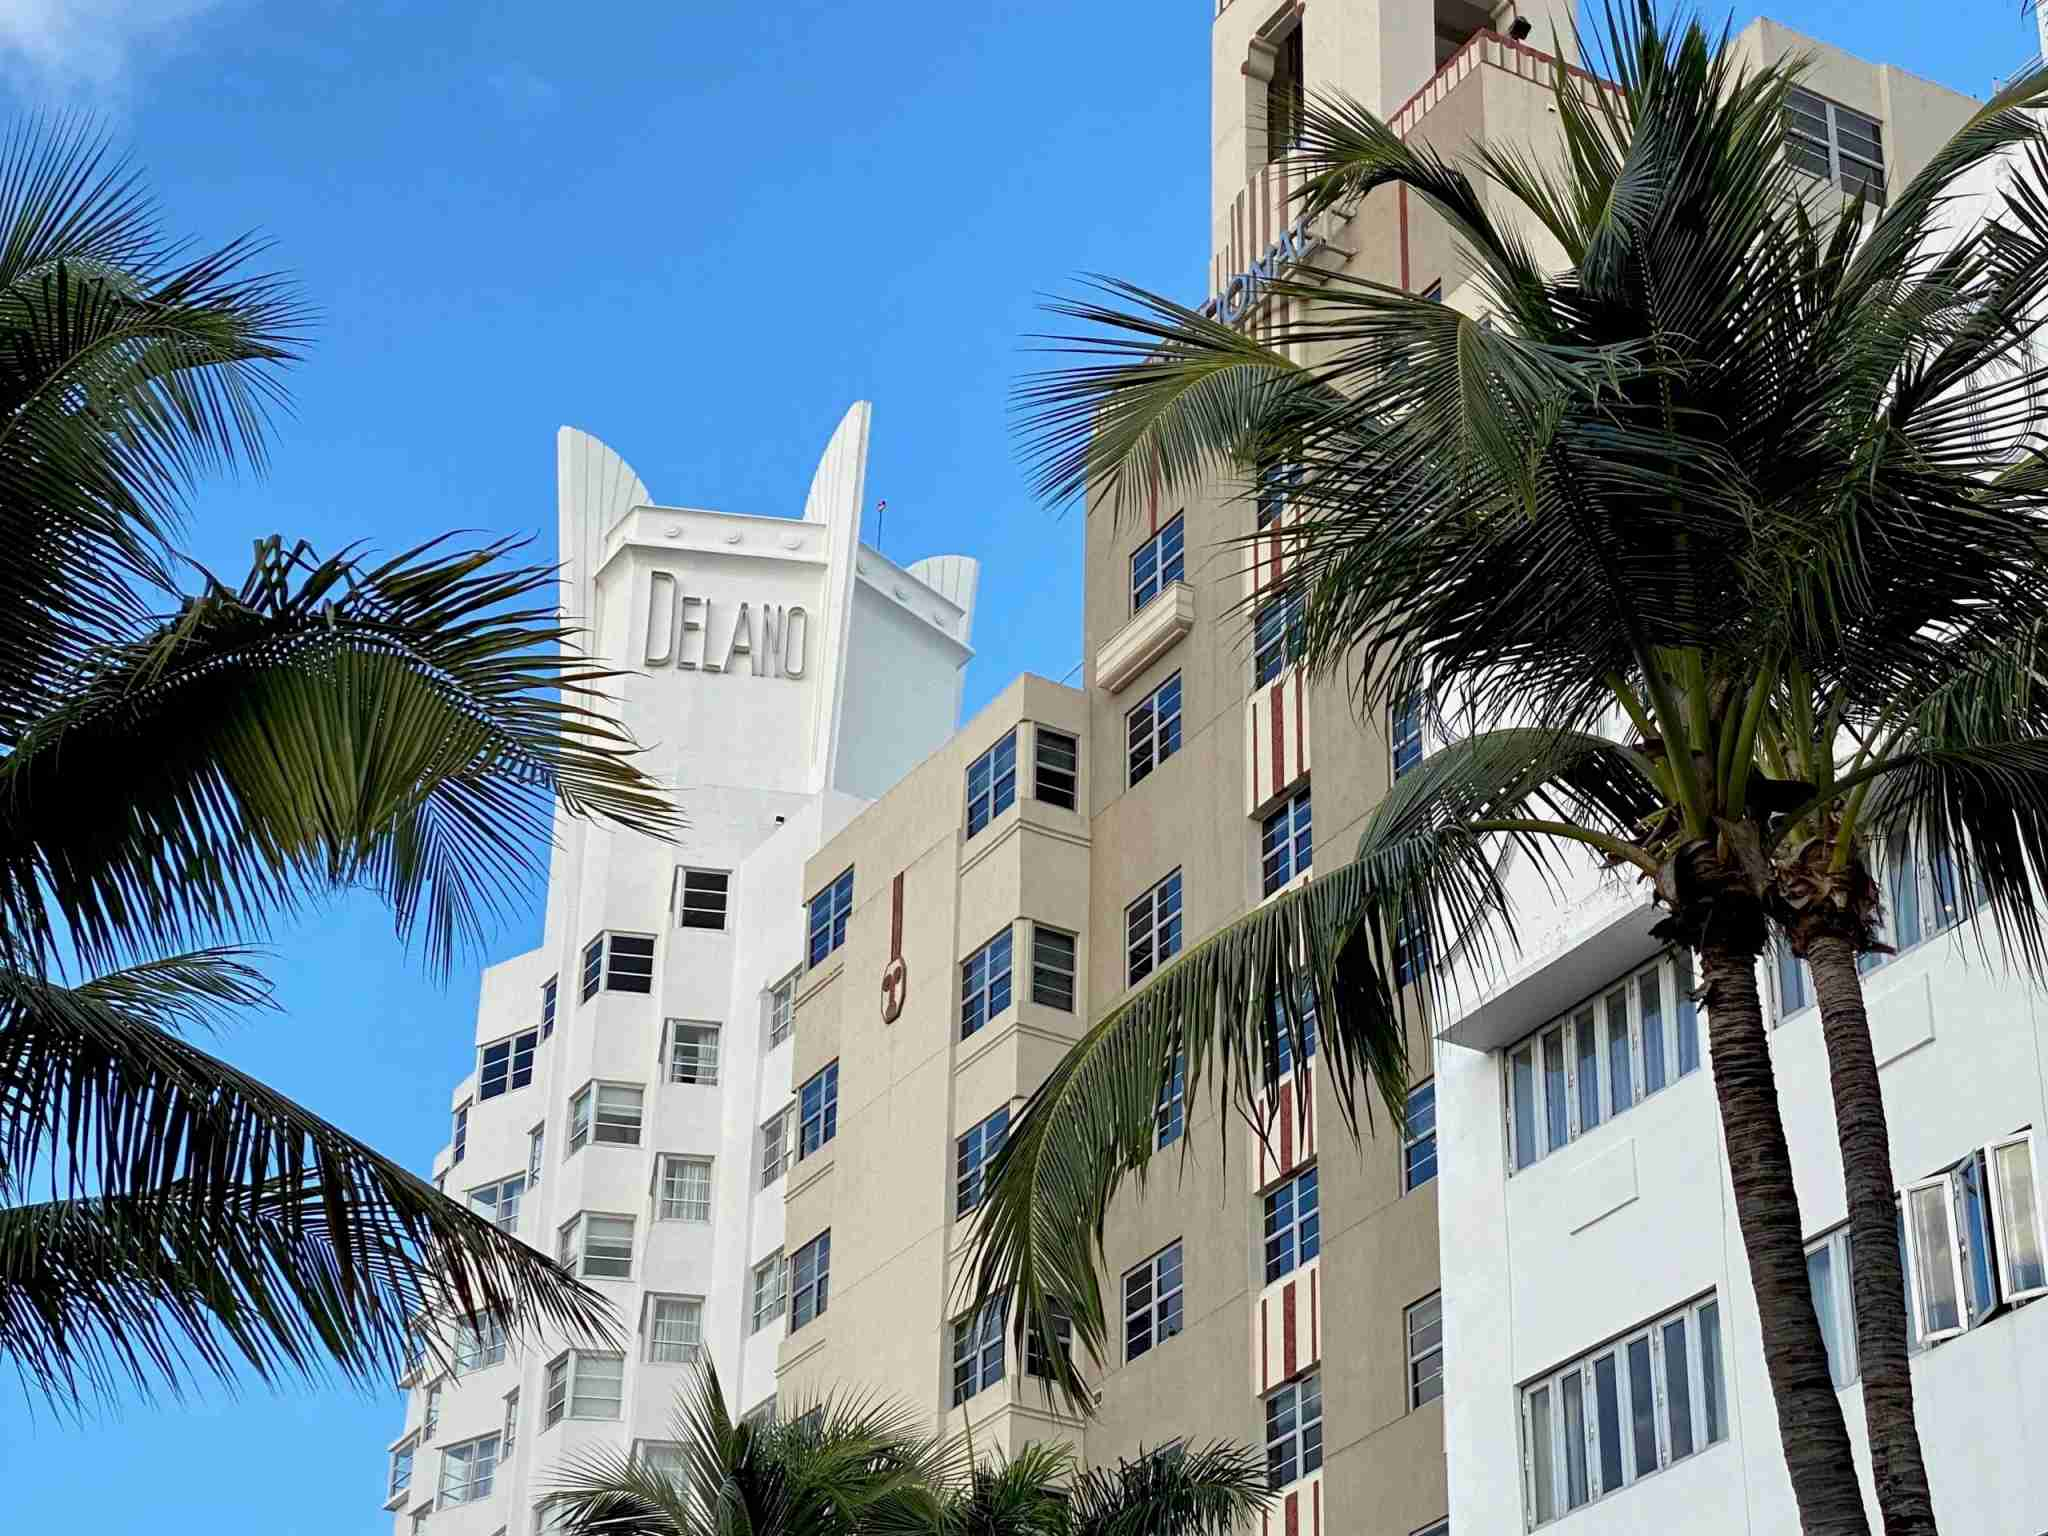 Art Deco buildings in South Beach, Miami. (Photo by Nick Ellis / The Points Guy)